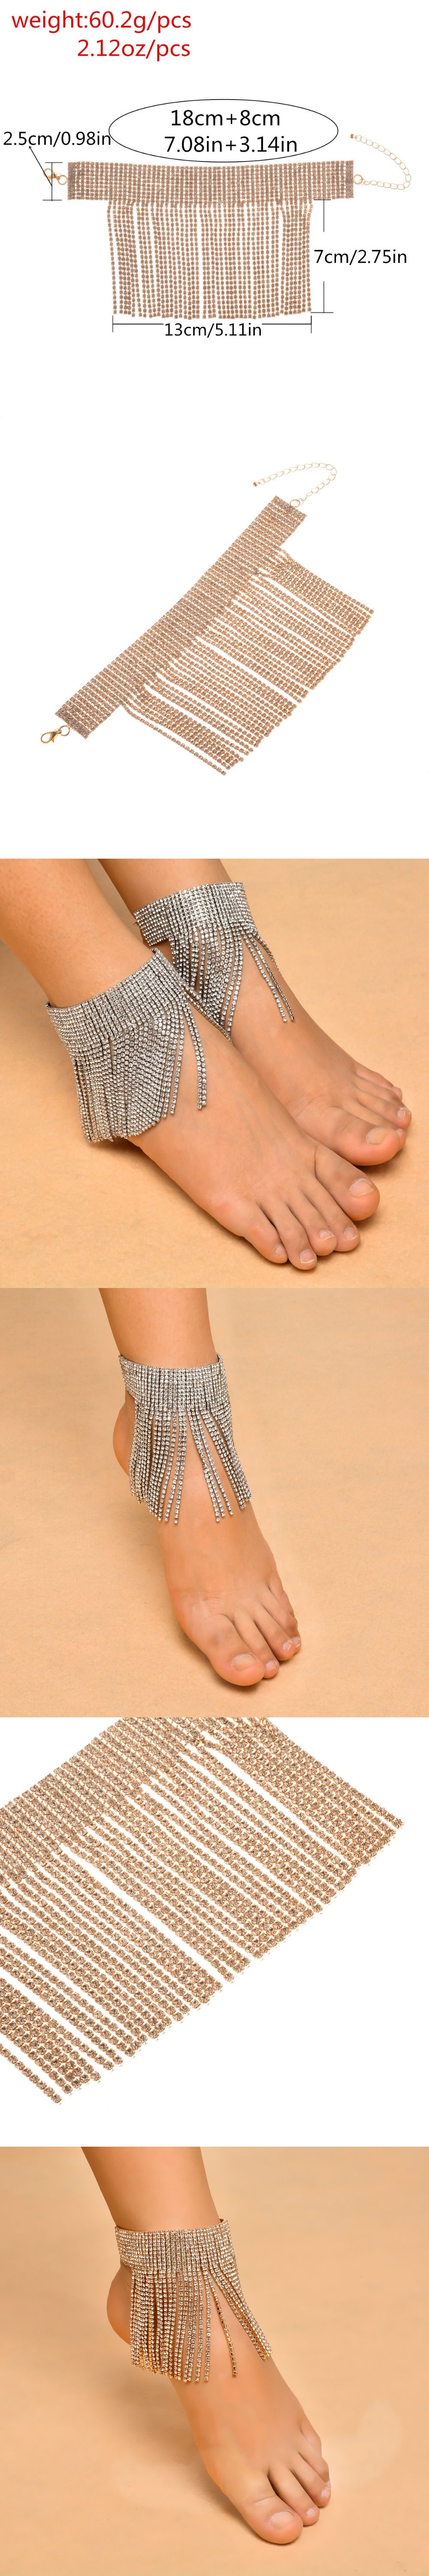 foot beach female item from scorpion in barefoot sexy pie bracelet crystal anklets sandals wedding leg boho anklet jewelry chain fashion